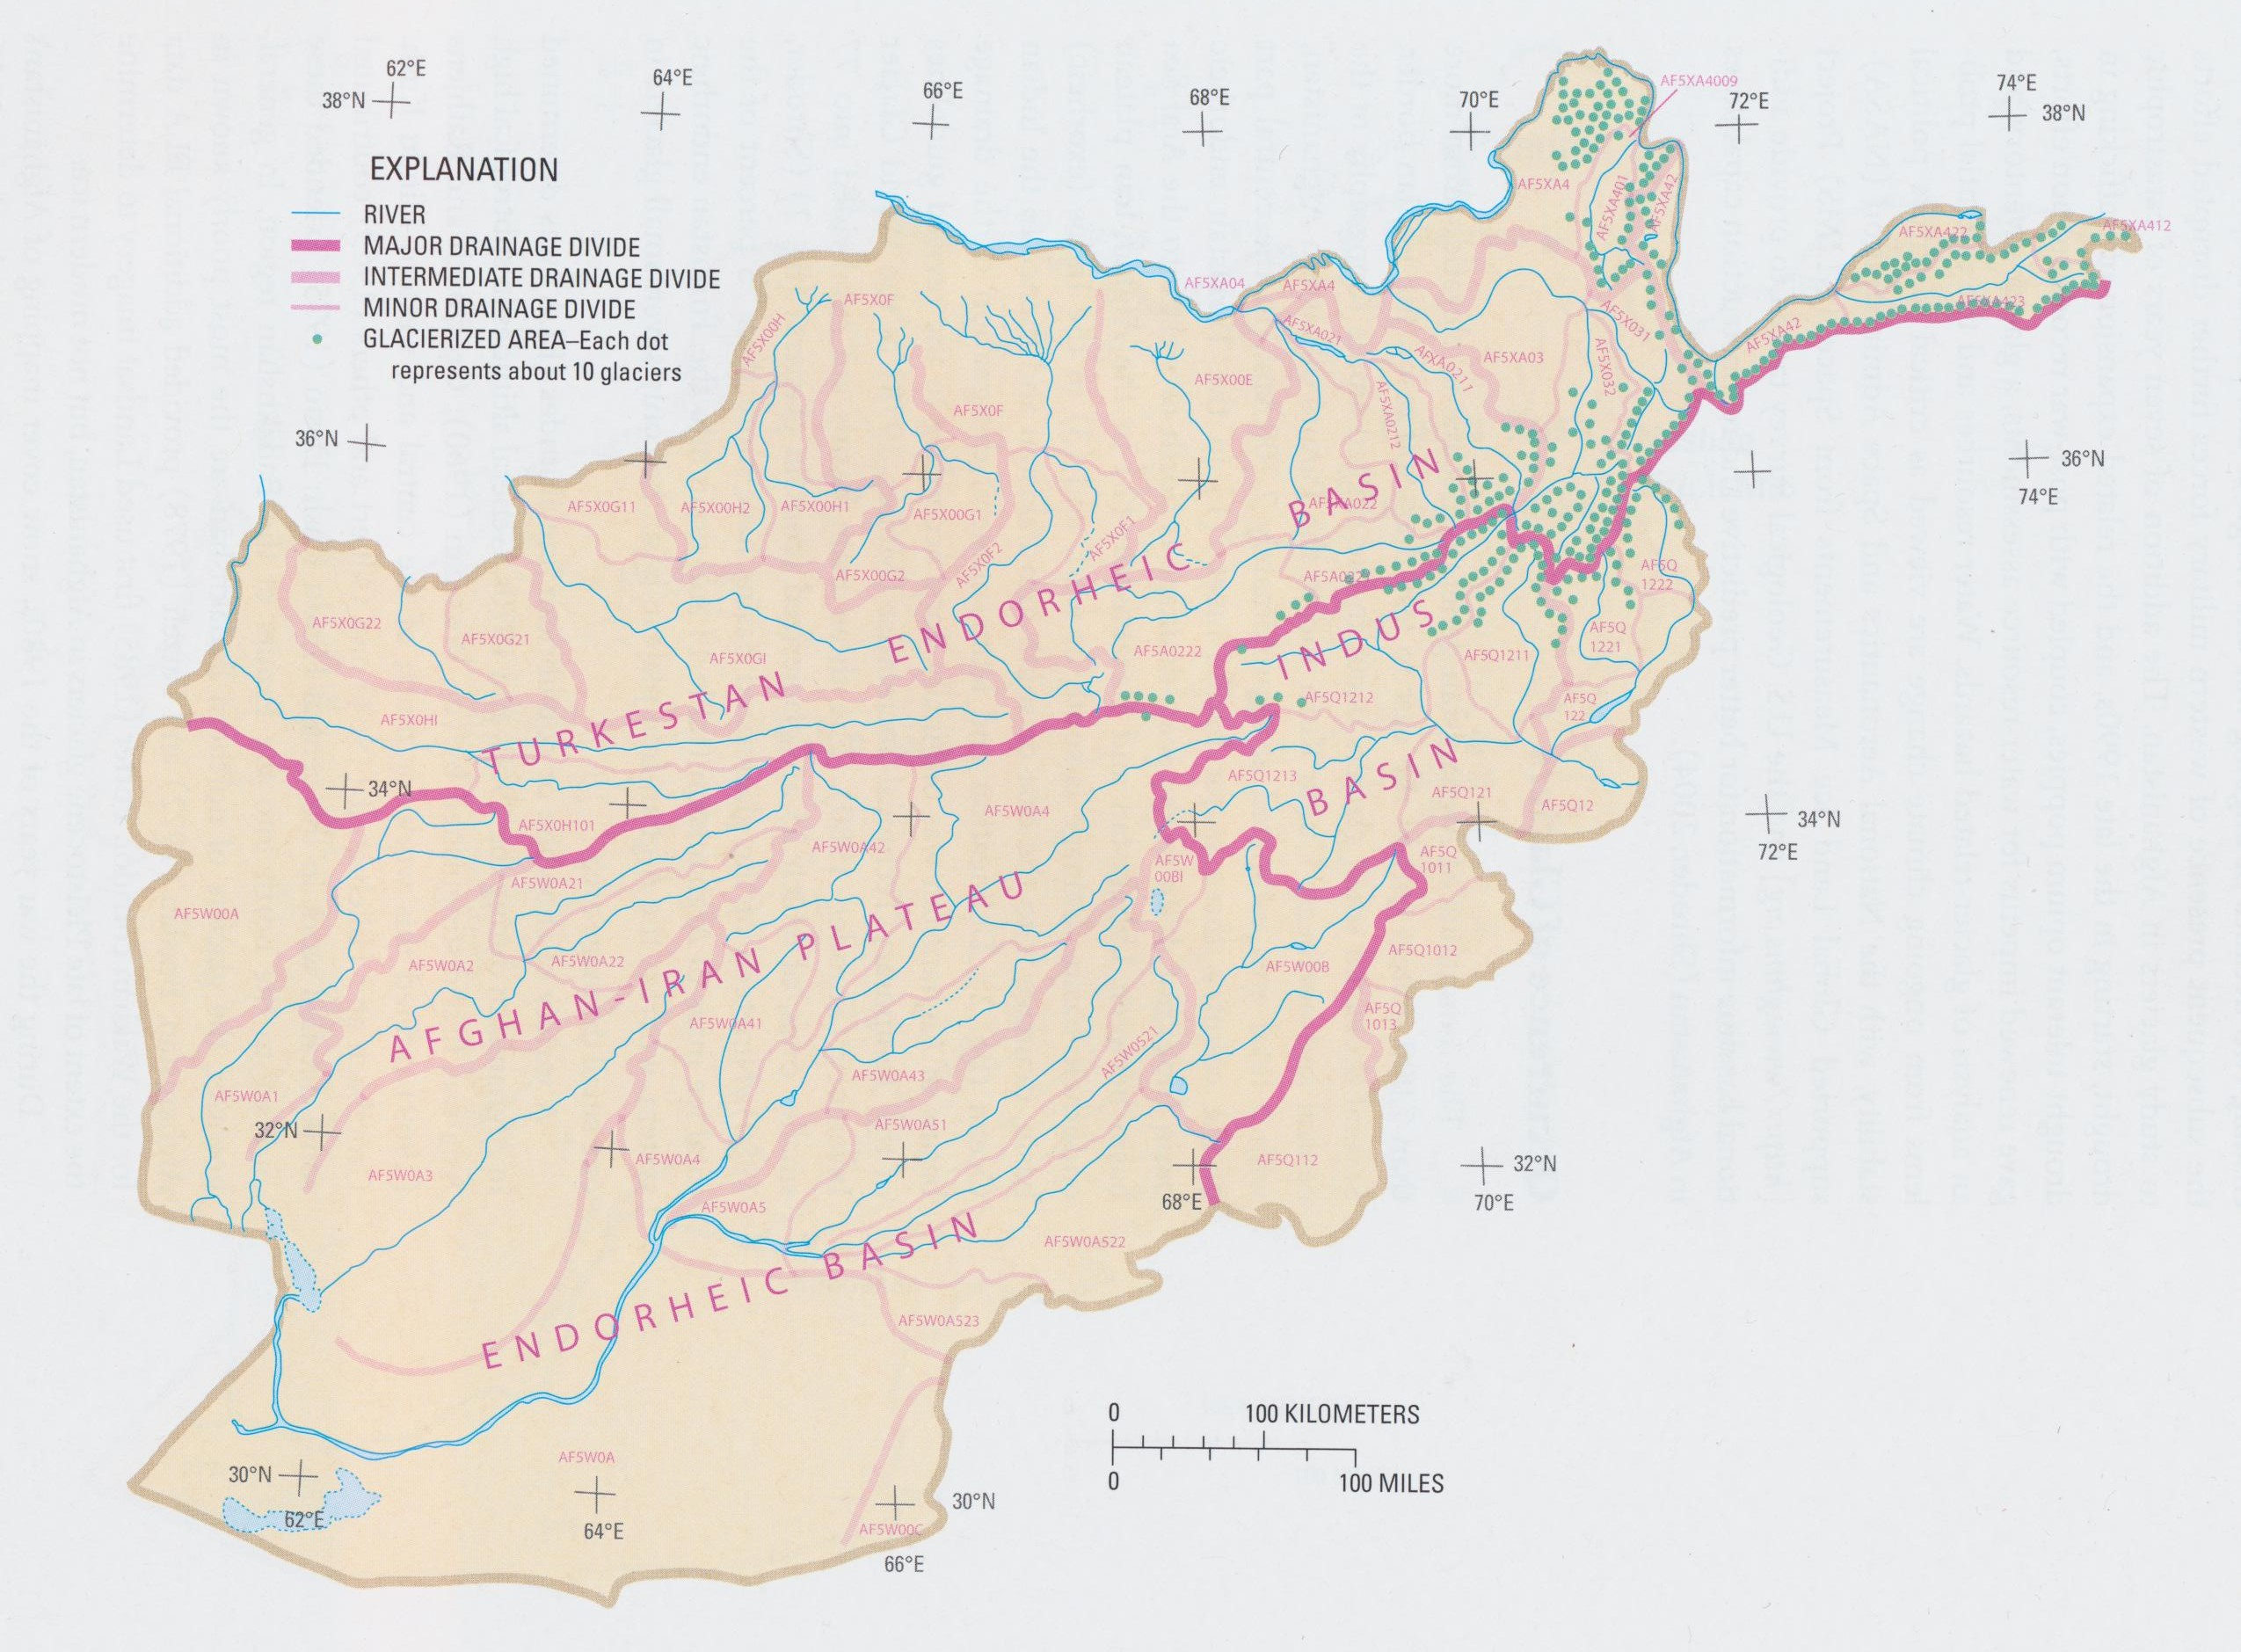 Physical Map Rivers Of Afghanistan on physical map of pakistan, physical map of bay of bengal, physical map of the far east, physical map of dubai, physical map of southern italy, physical features of afghanistan, physical map of georgia, physical map of ancient assyria, physical map of north china, physical map of nauru, physical map of turkey, physical map of norway, physical map of madagascar, physical and political map of louisiana, physical map of bodies of water, physical map of n. america, physical map somalia, physical map of france, physical map of kenya, physical map of russia,